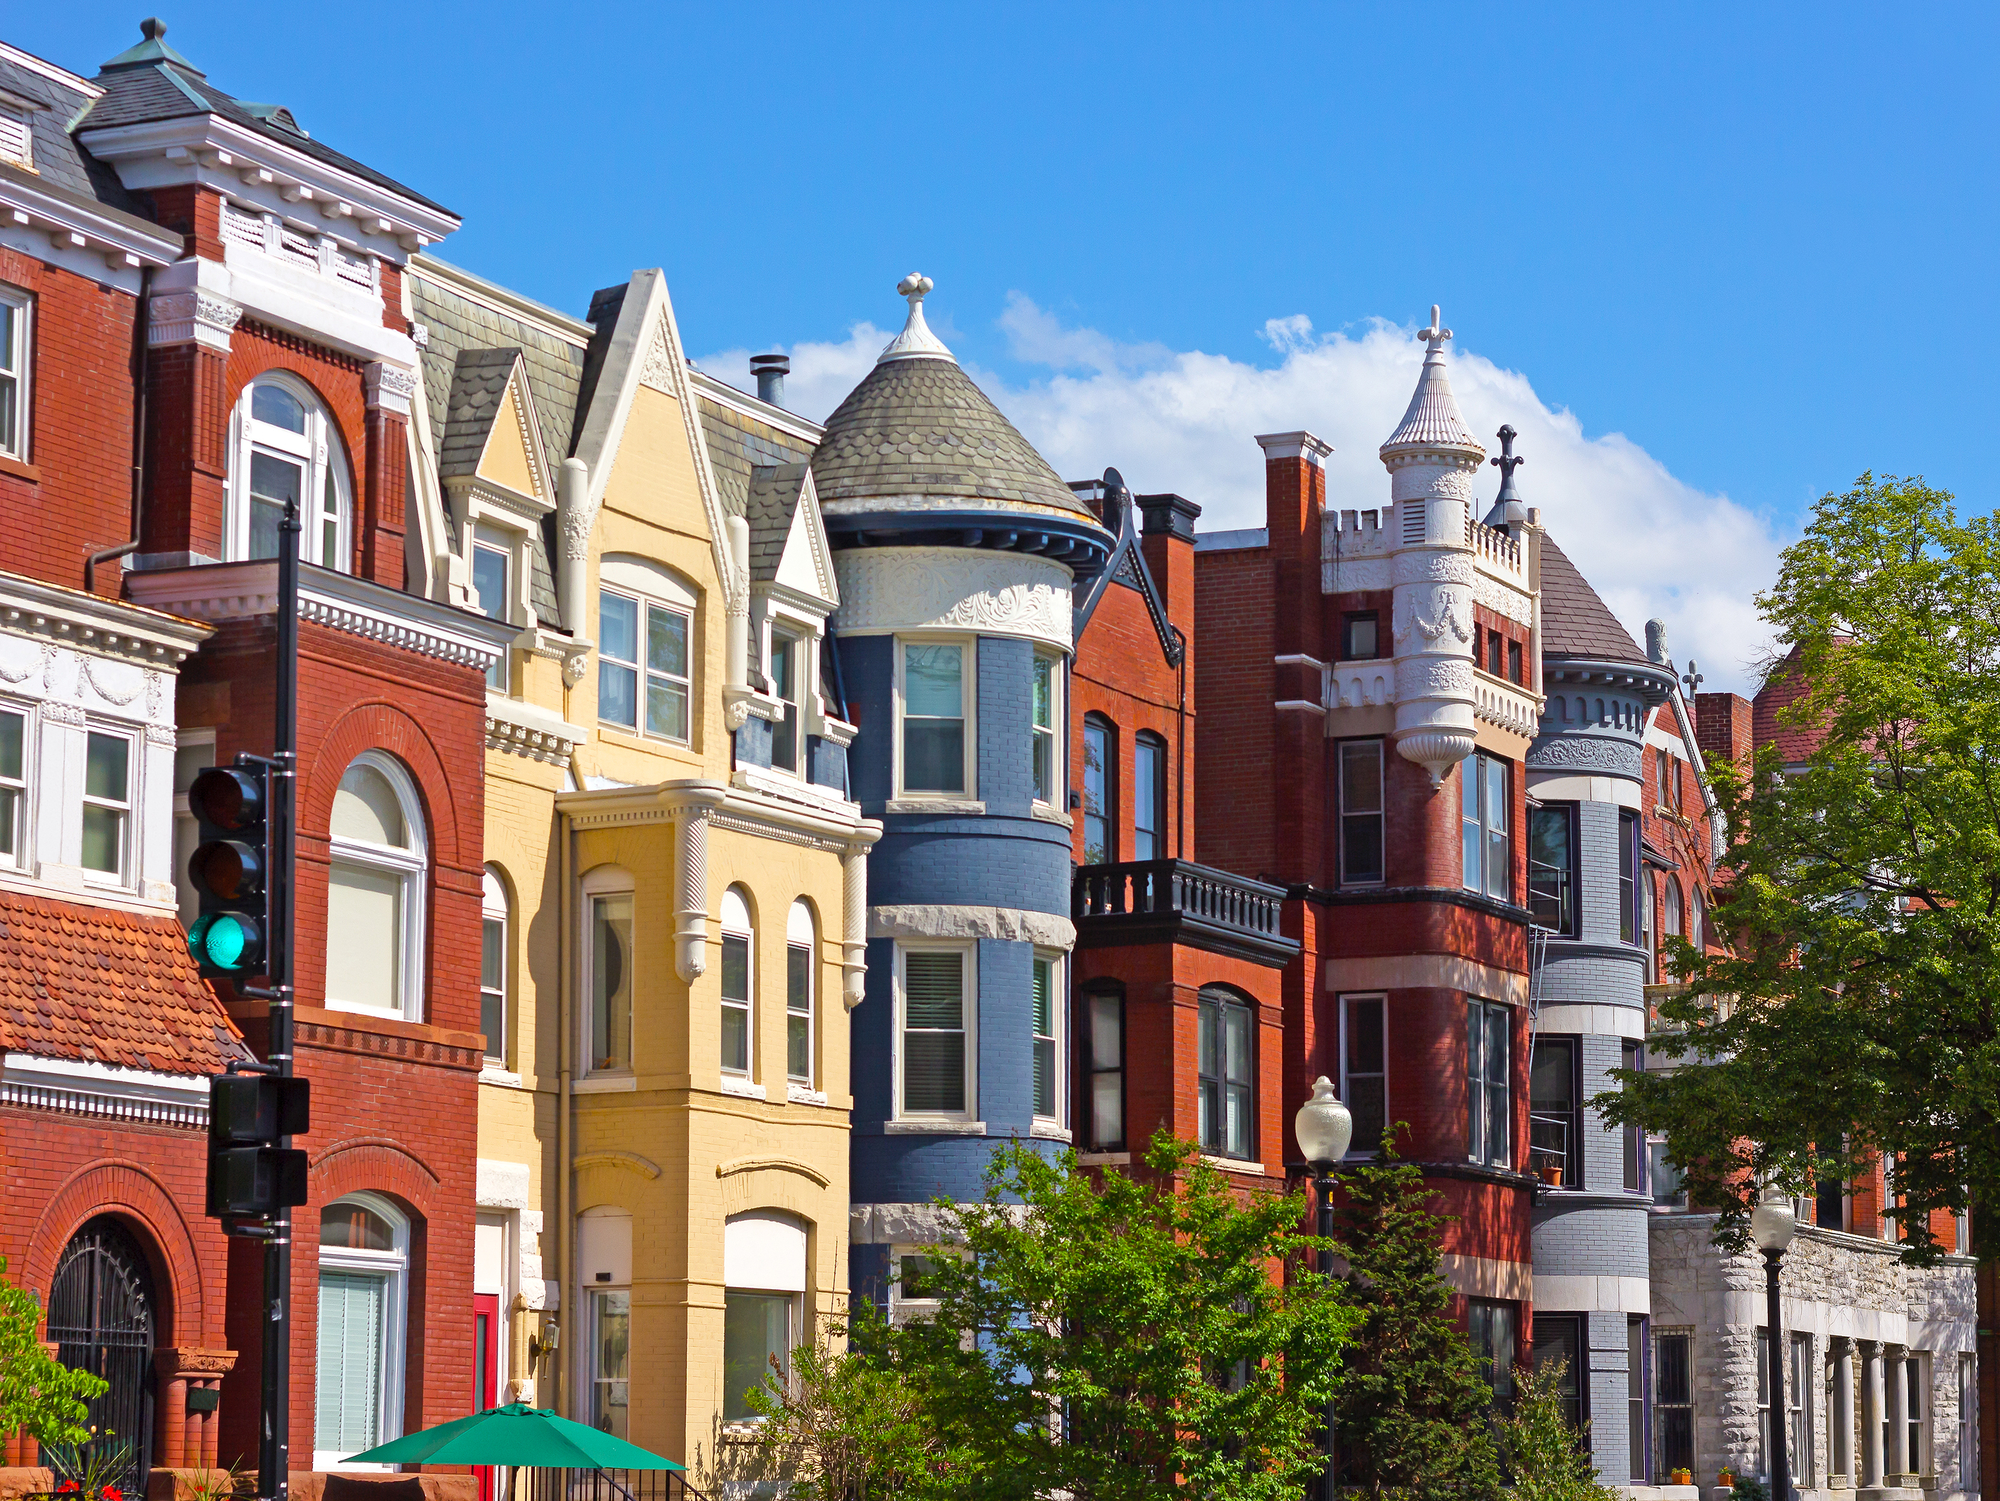 Build Your Portfolio With Skilled Property Management, D.C. Investors